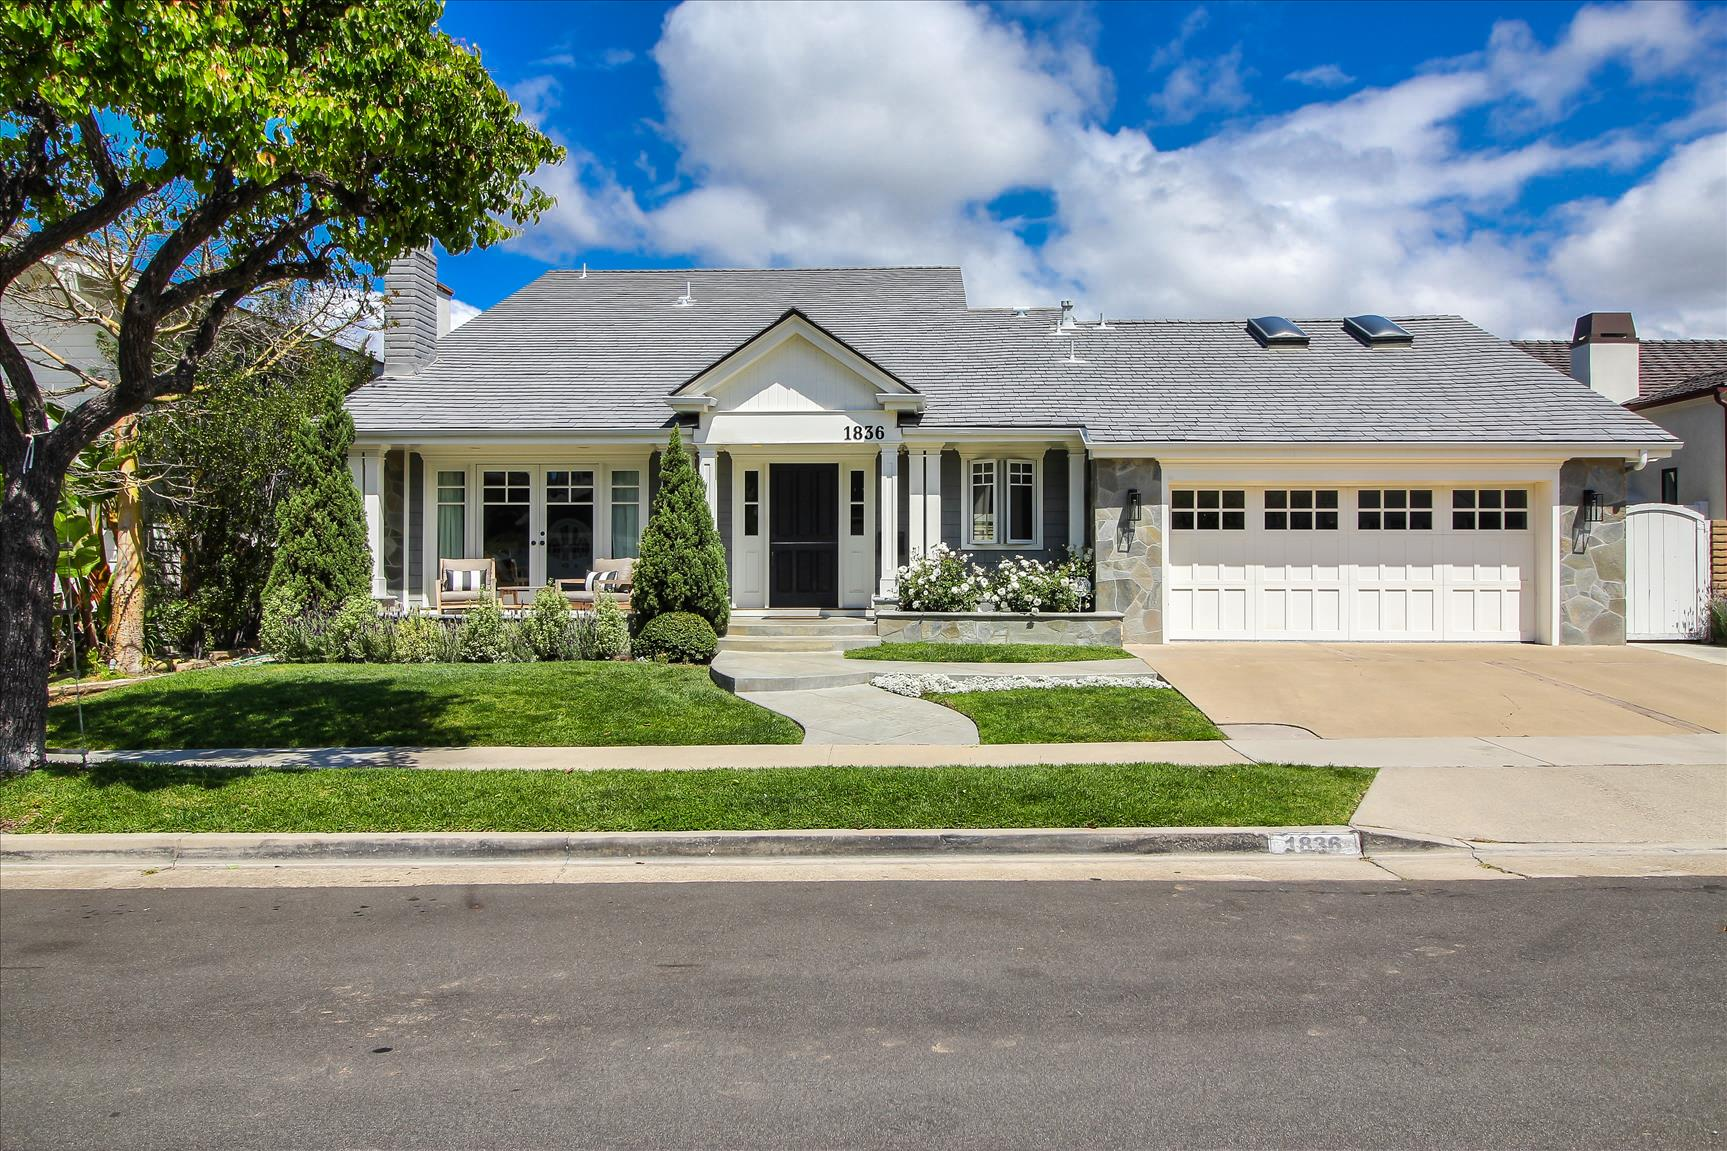 1836 Port Barmouth Pl, Newport Beach, CA  926602.jpg